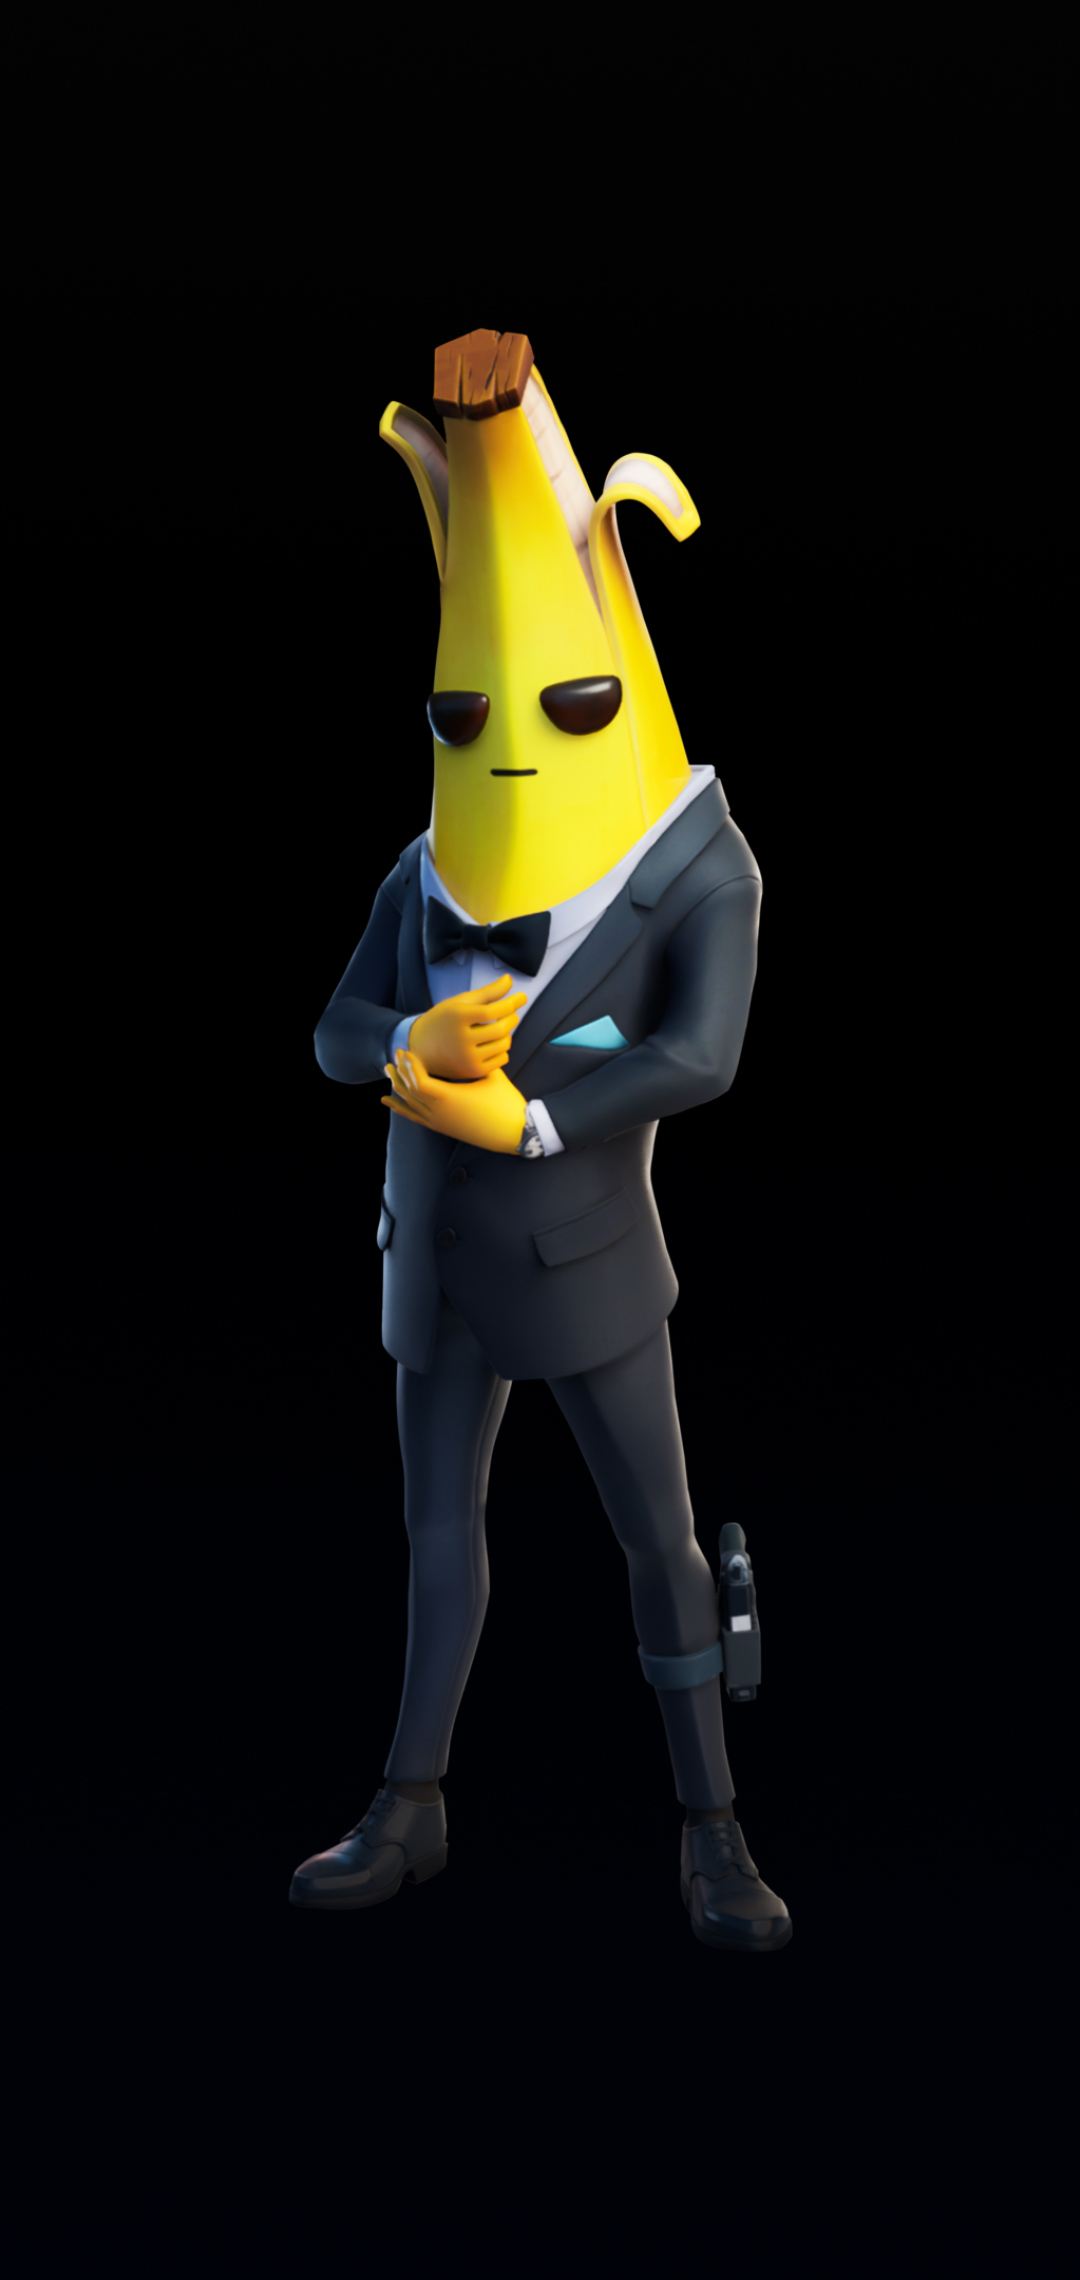 Fortnite Banana Man Wallpaper